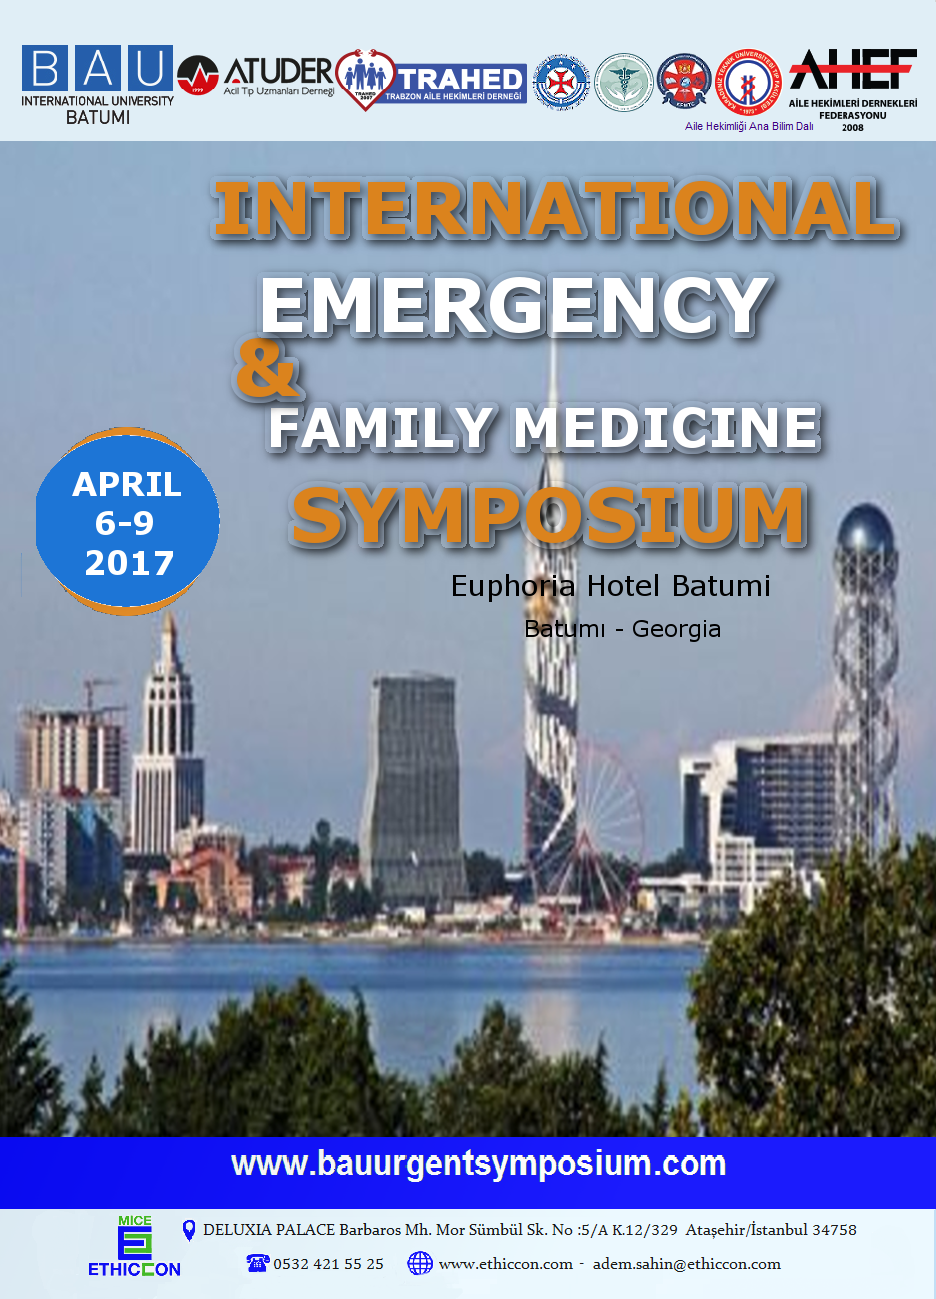 International-Emergency-and-Family-Medicine-Symposium-in-Batumi